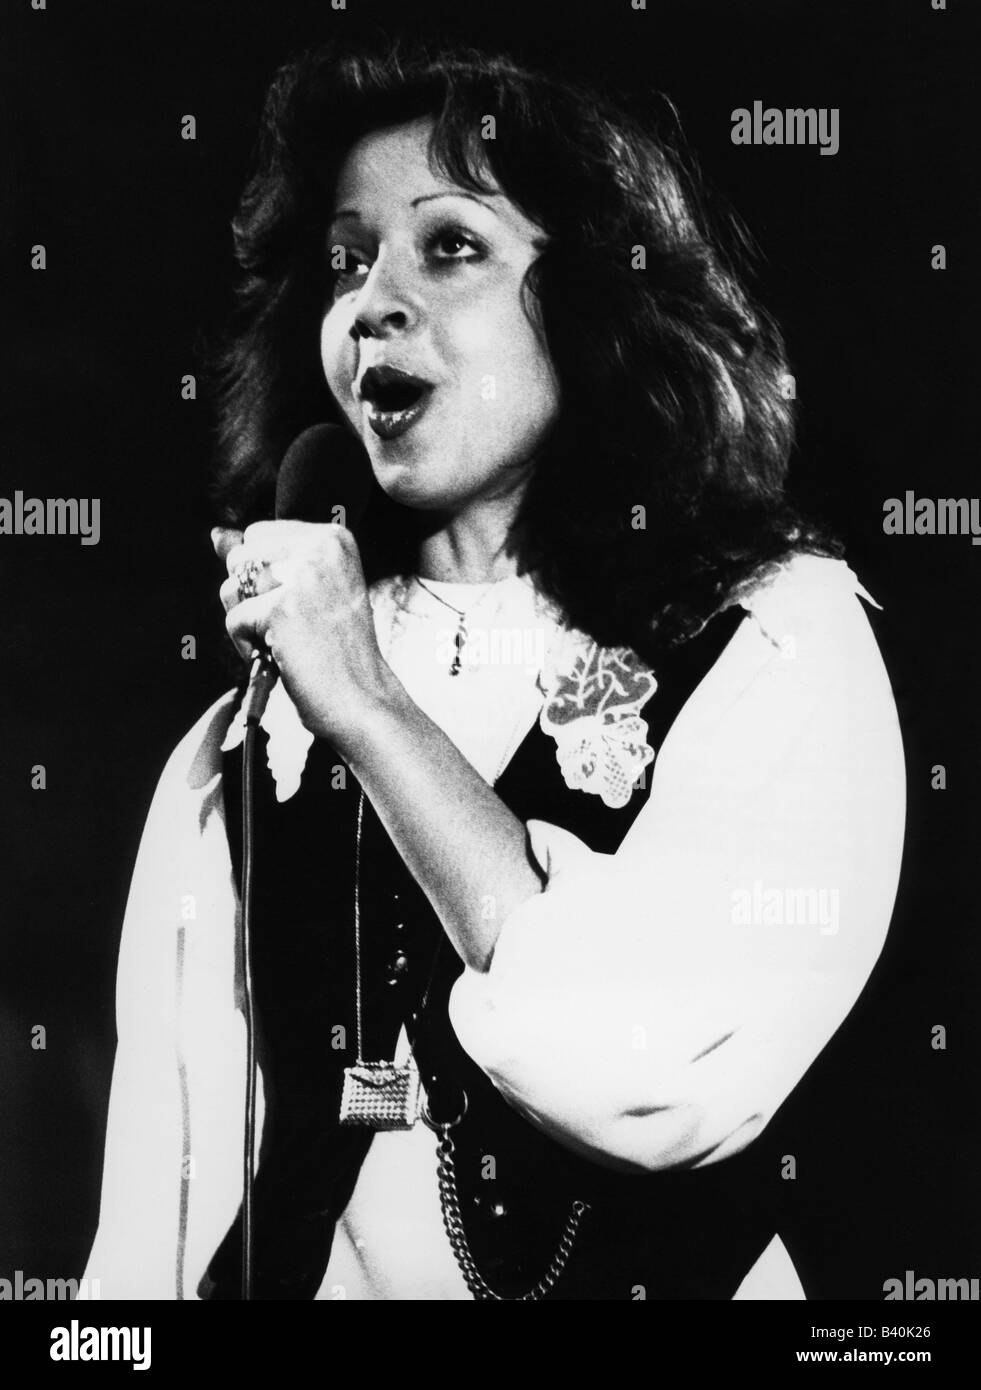 Leandros, Vicky, * 23.8.1948, German-Greek singer,  1970, Additional-Rights-Clearances-NA - Stock Image